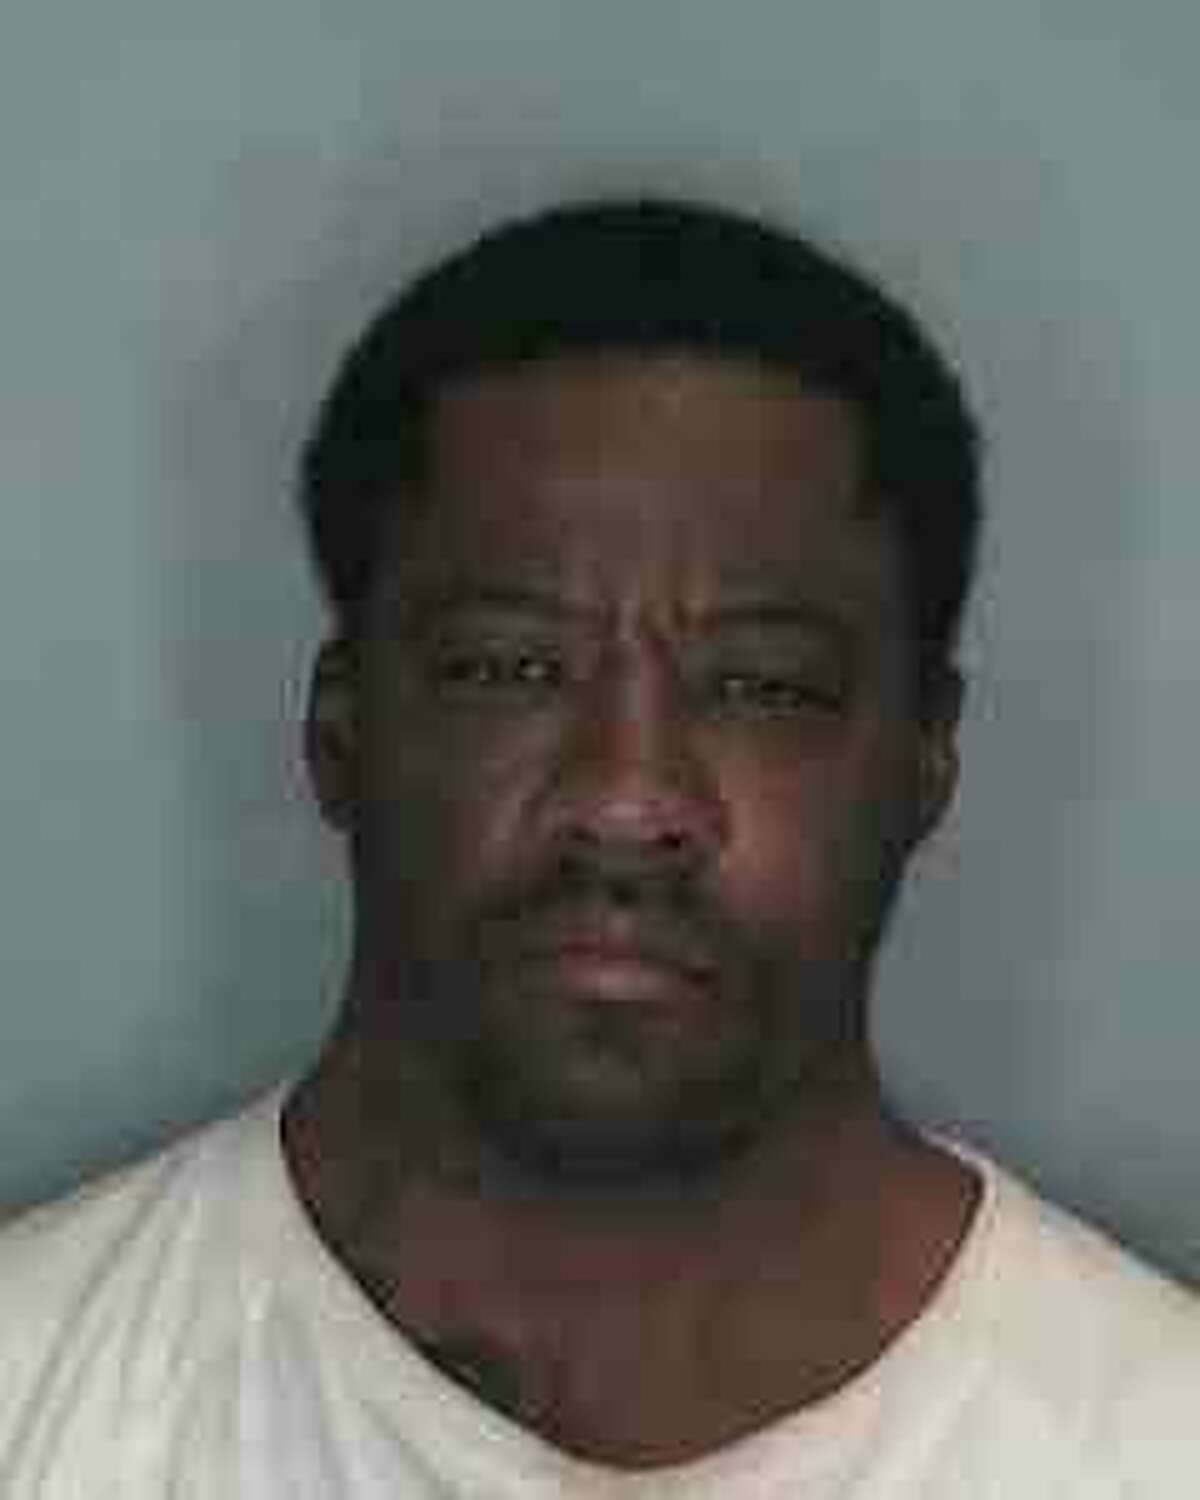 Jamell Steven Modest, 46, of Schenectady, was charged Dec. 14, 2014 in the shooting death of Marika Booth, who also went by Marika Harris. Booth was near her infant at the time she was shot and killed. (Schenectady Police Department) ORG XMIT: MER2014121410311208